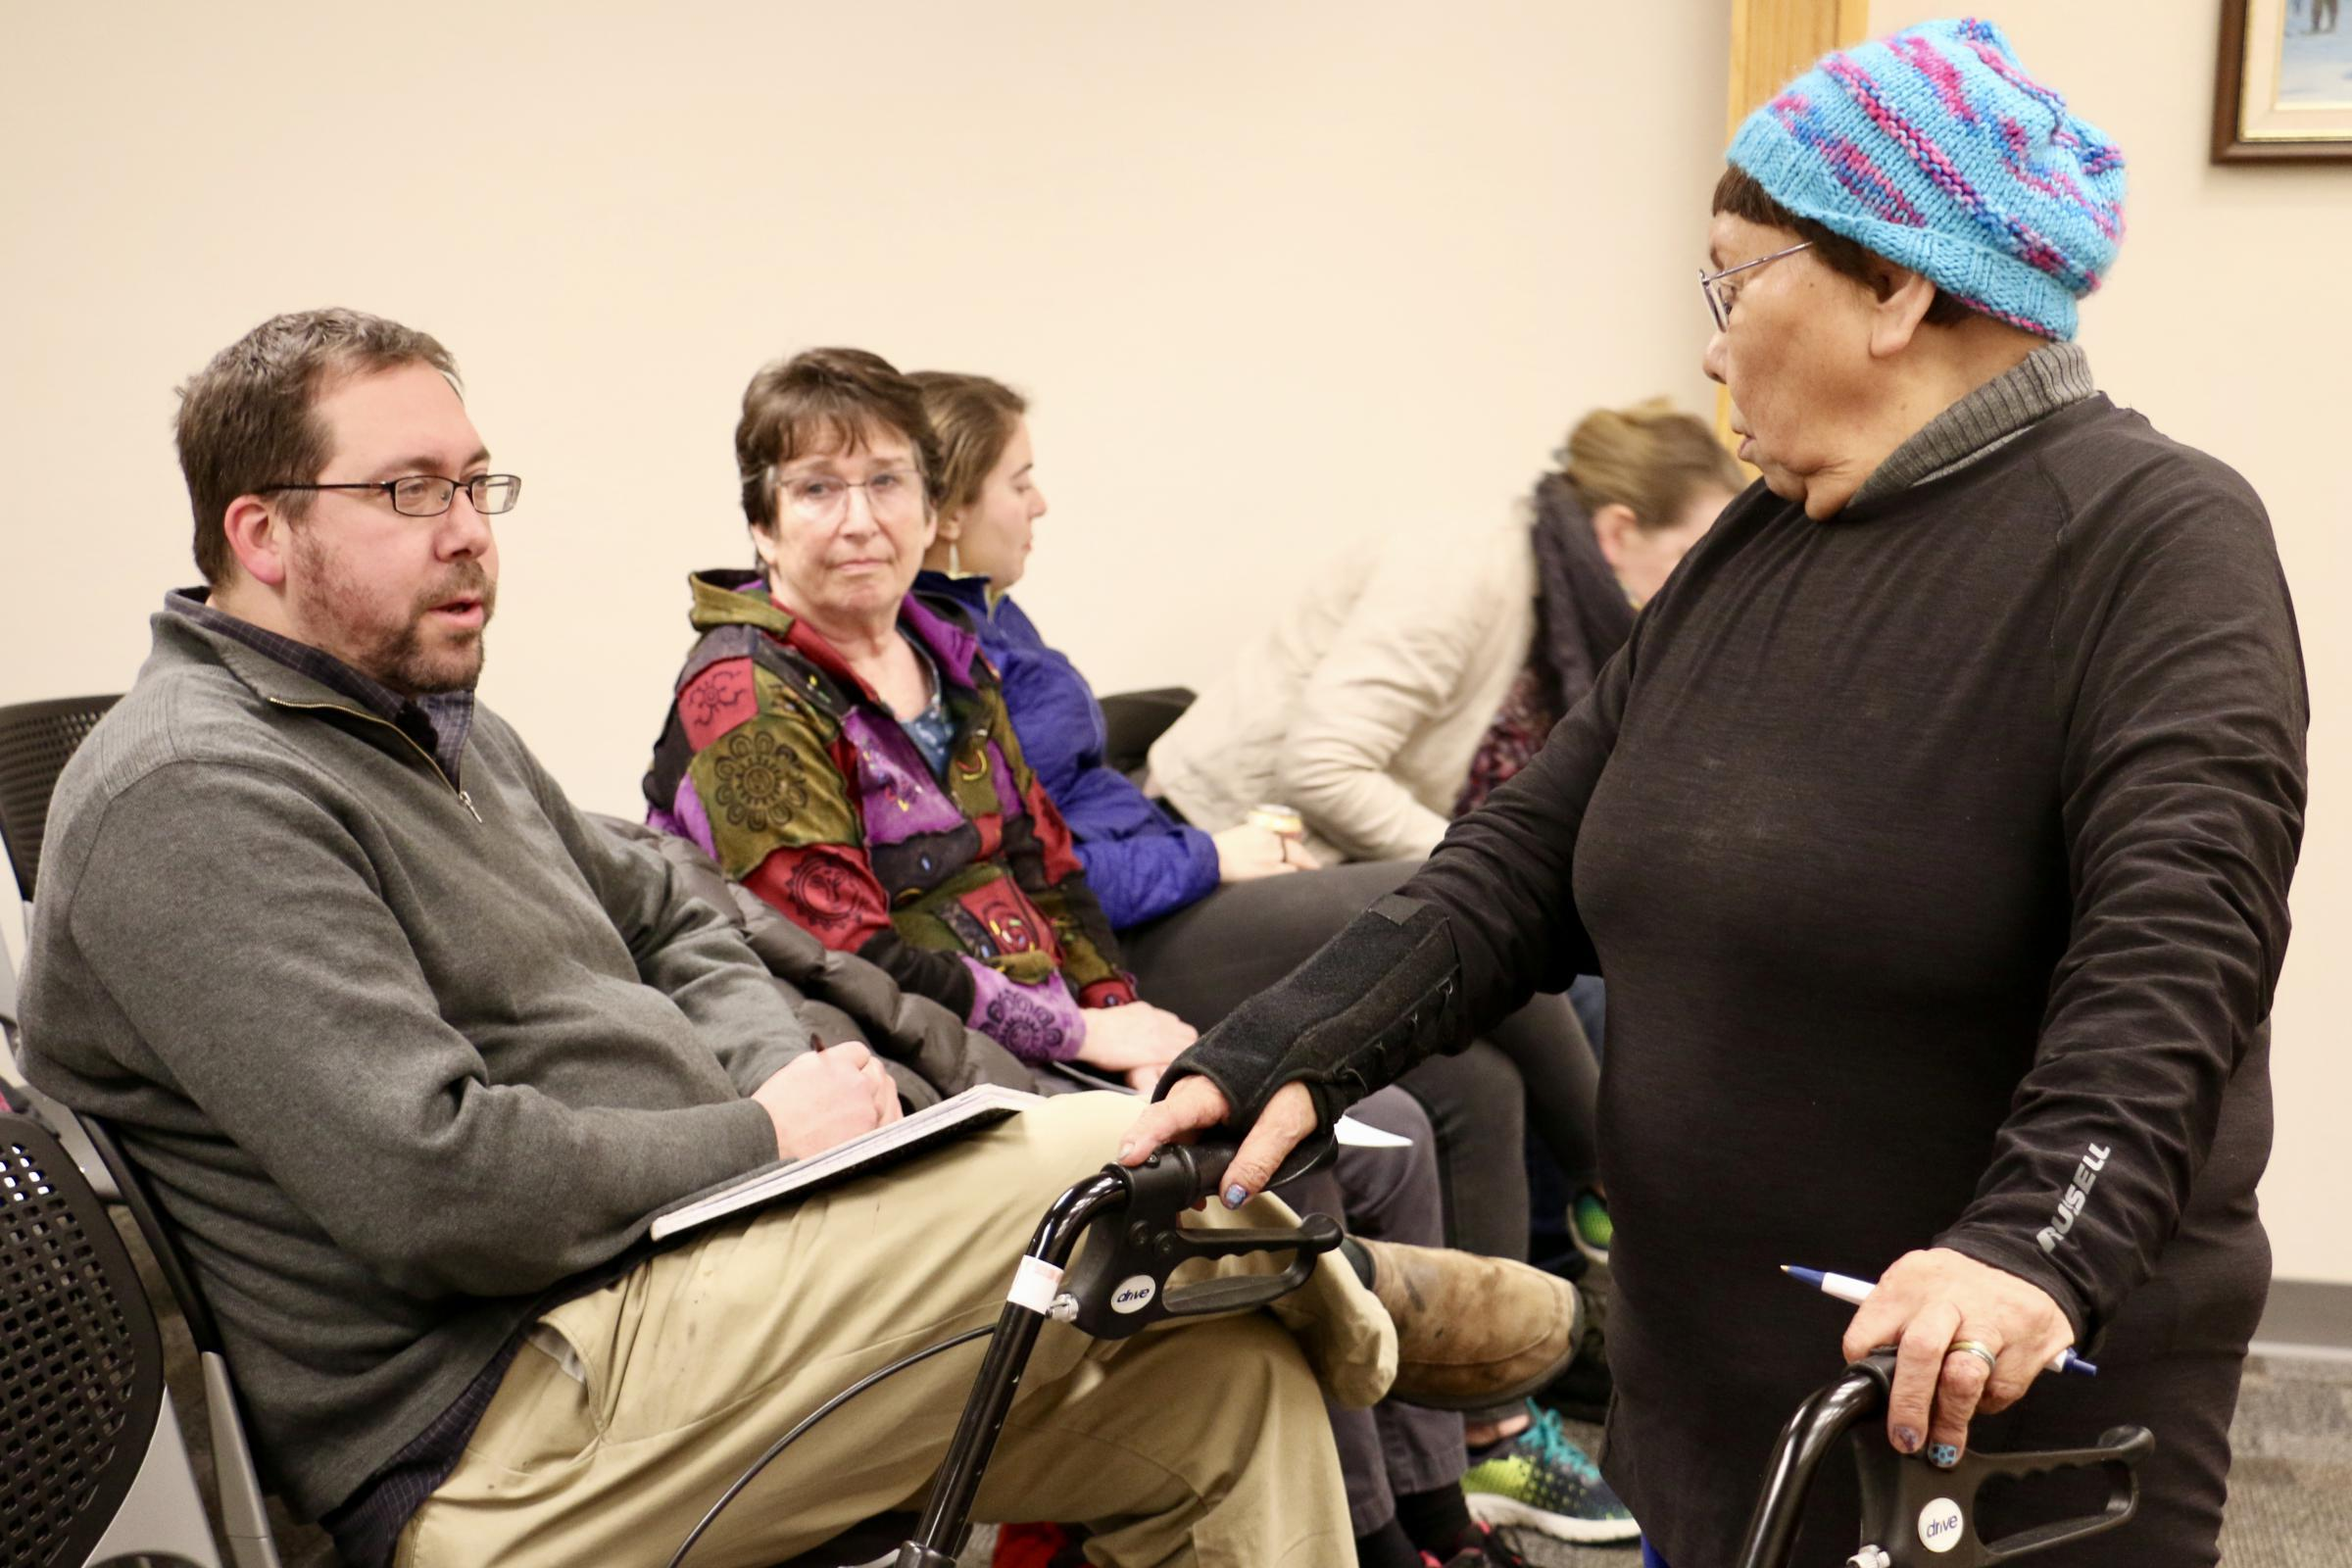 District 38 Representative Zach Fansler speaking with Bethel resident Mary Nanuwak at the December 12, 2017 Bethel City Council meeting. Fansler is accused of hitting a woman when she tried to leave his hotel room. (Photo by Christine Trudeau/KYUK)